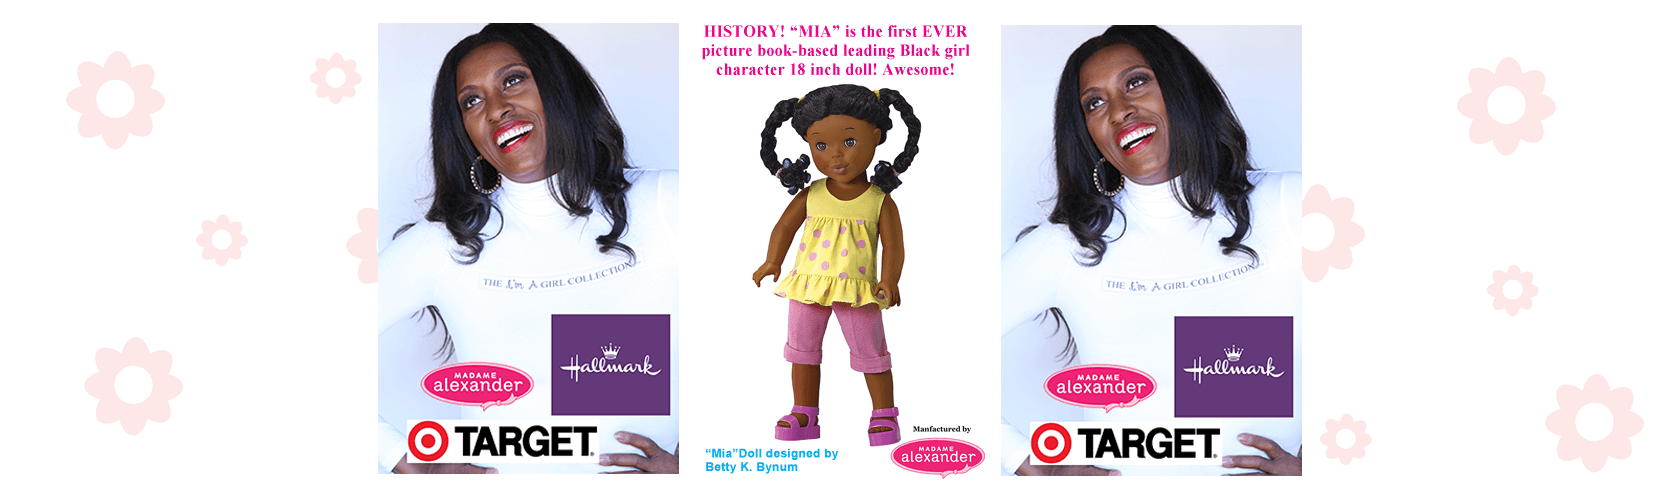 Pretty Little Black Girl Doll - Mia